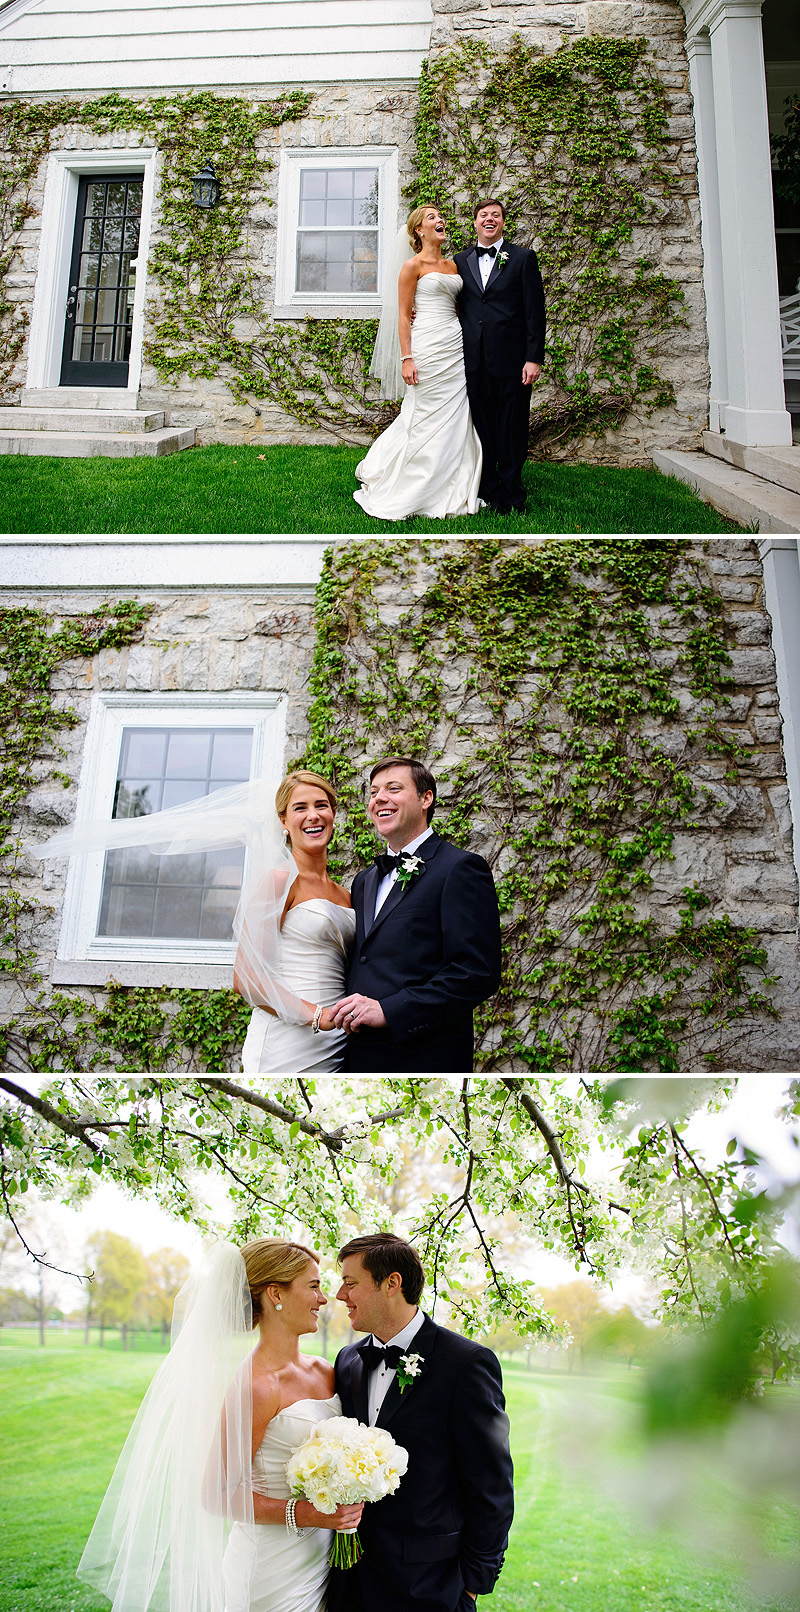 Fun bride and groom portraits in Kansas City.